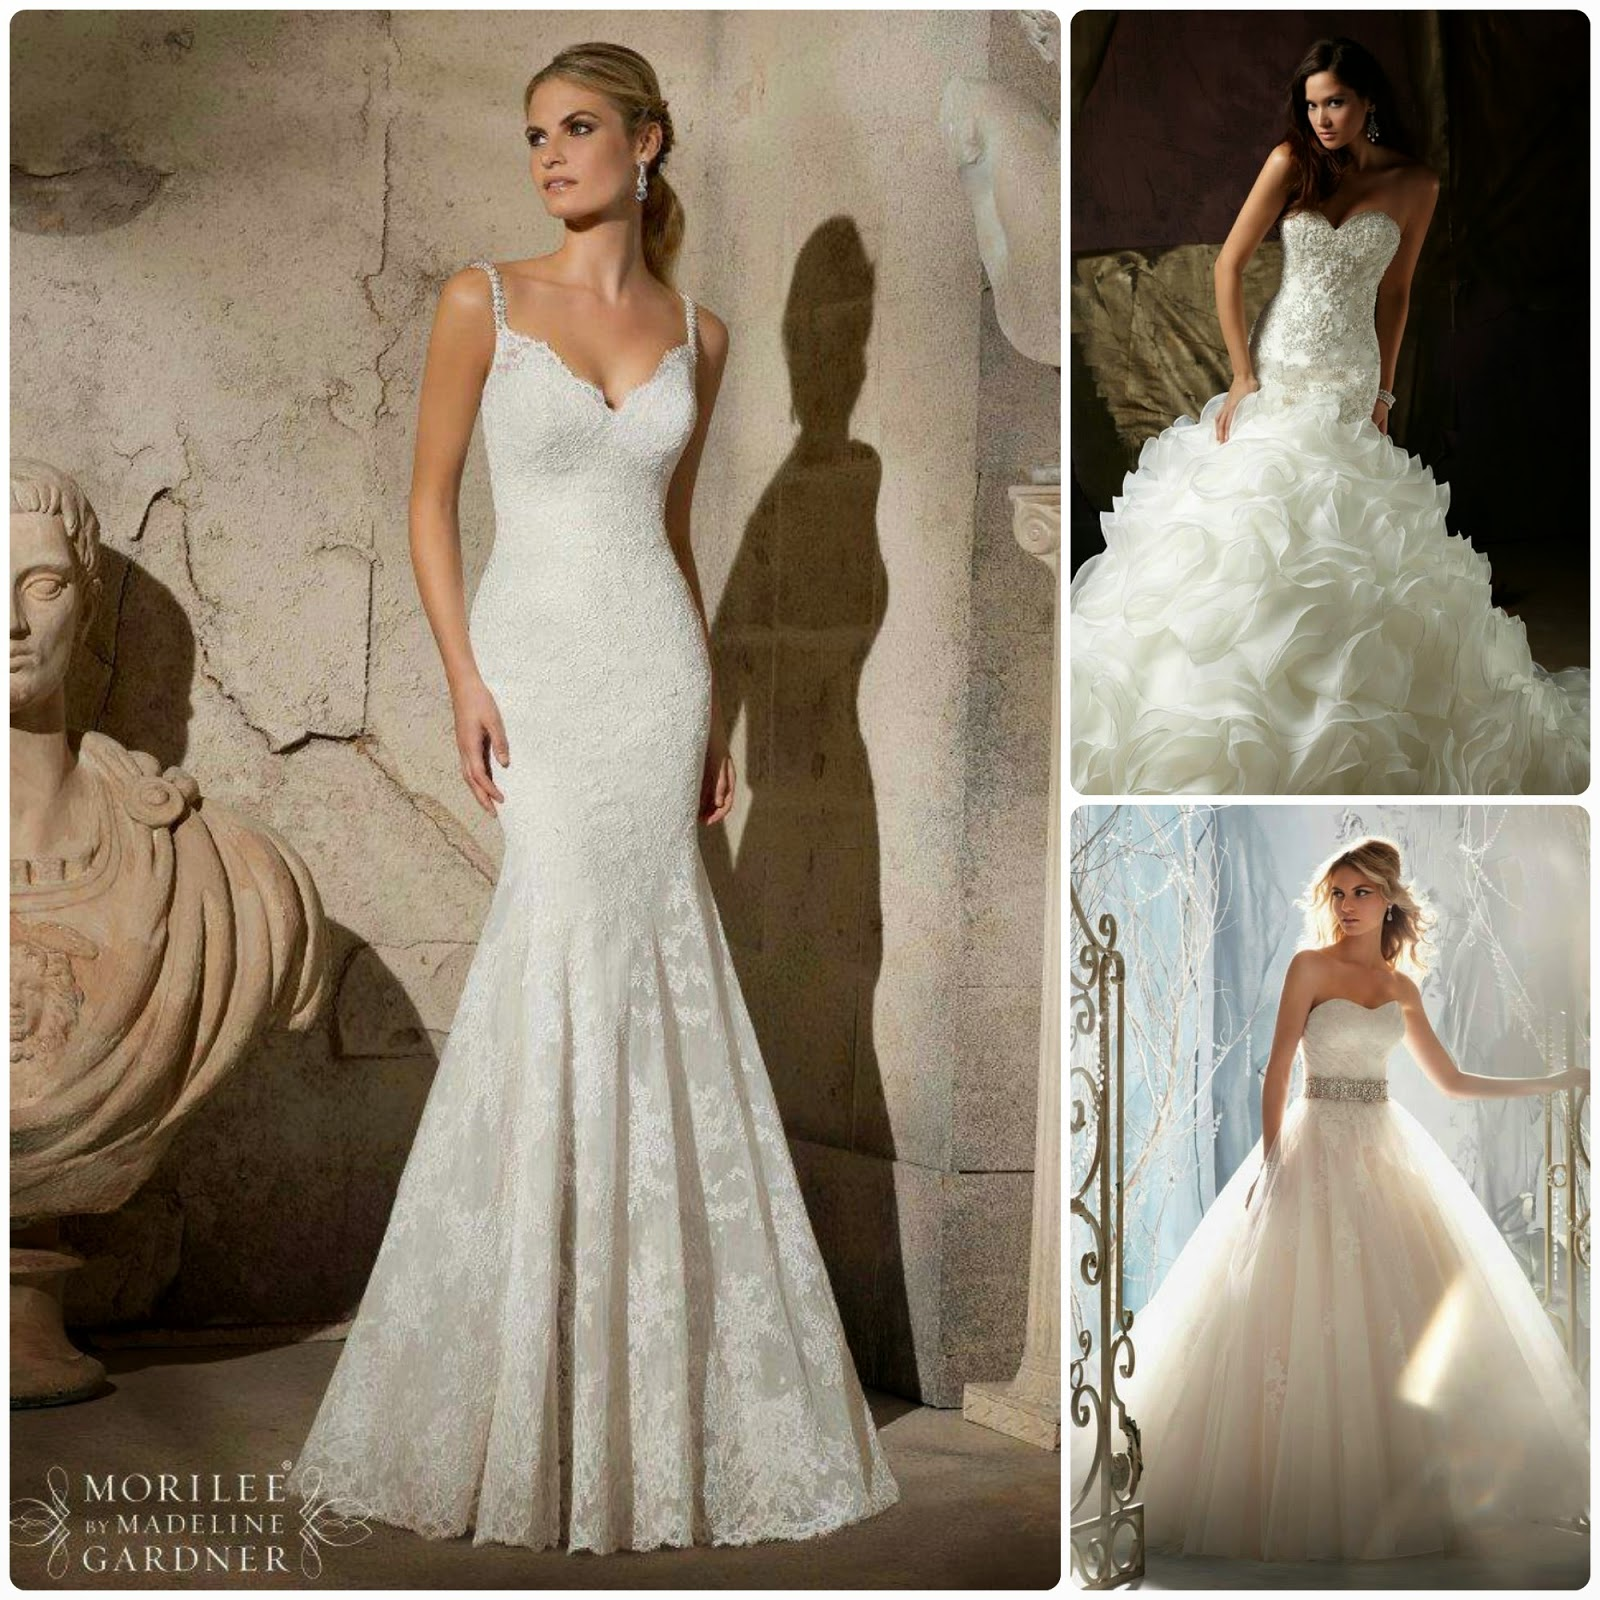 Brides of america online store for Miami wedding dresses stores